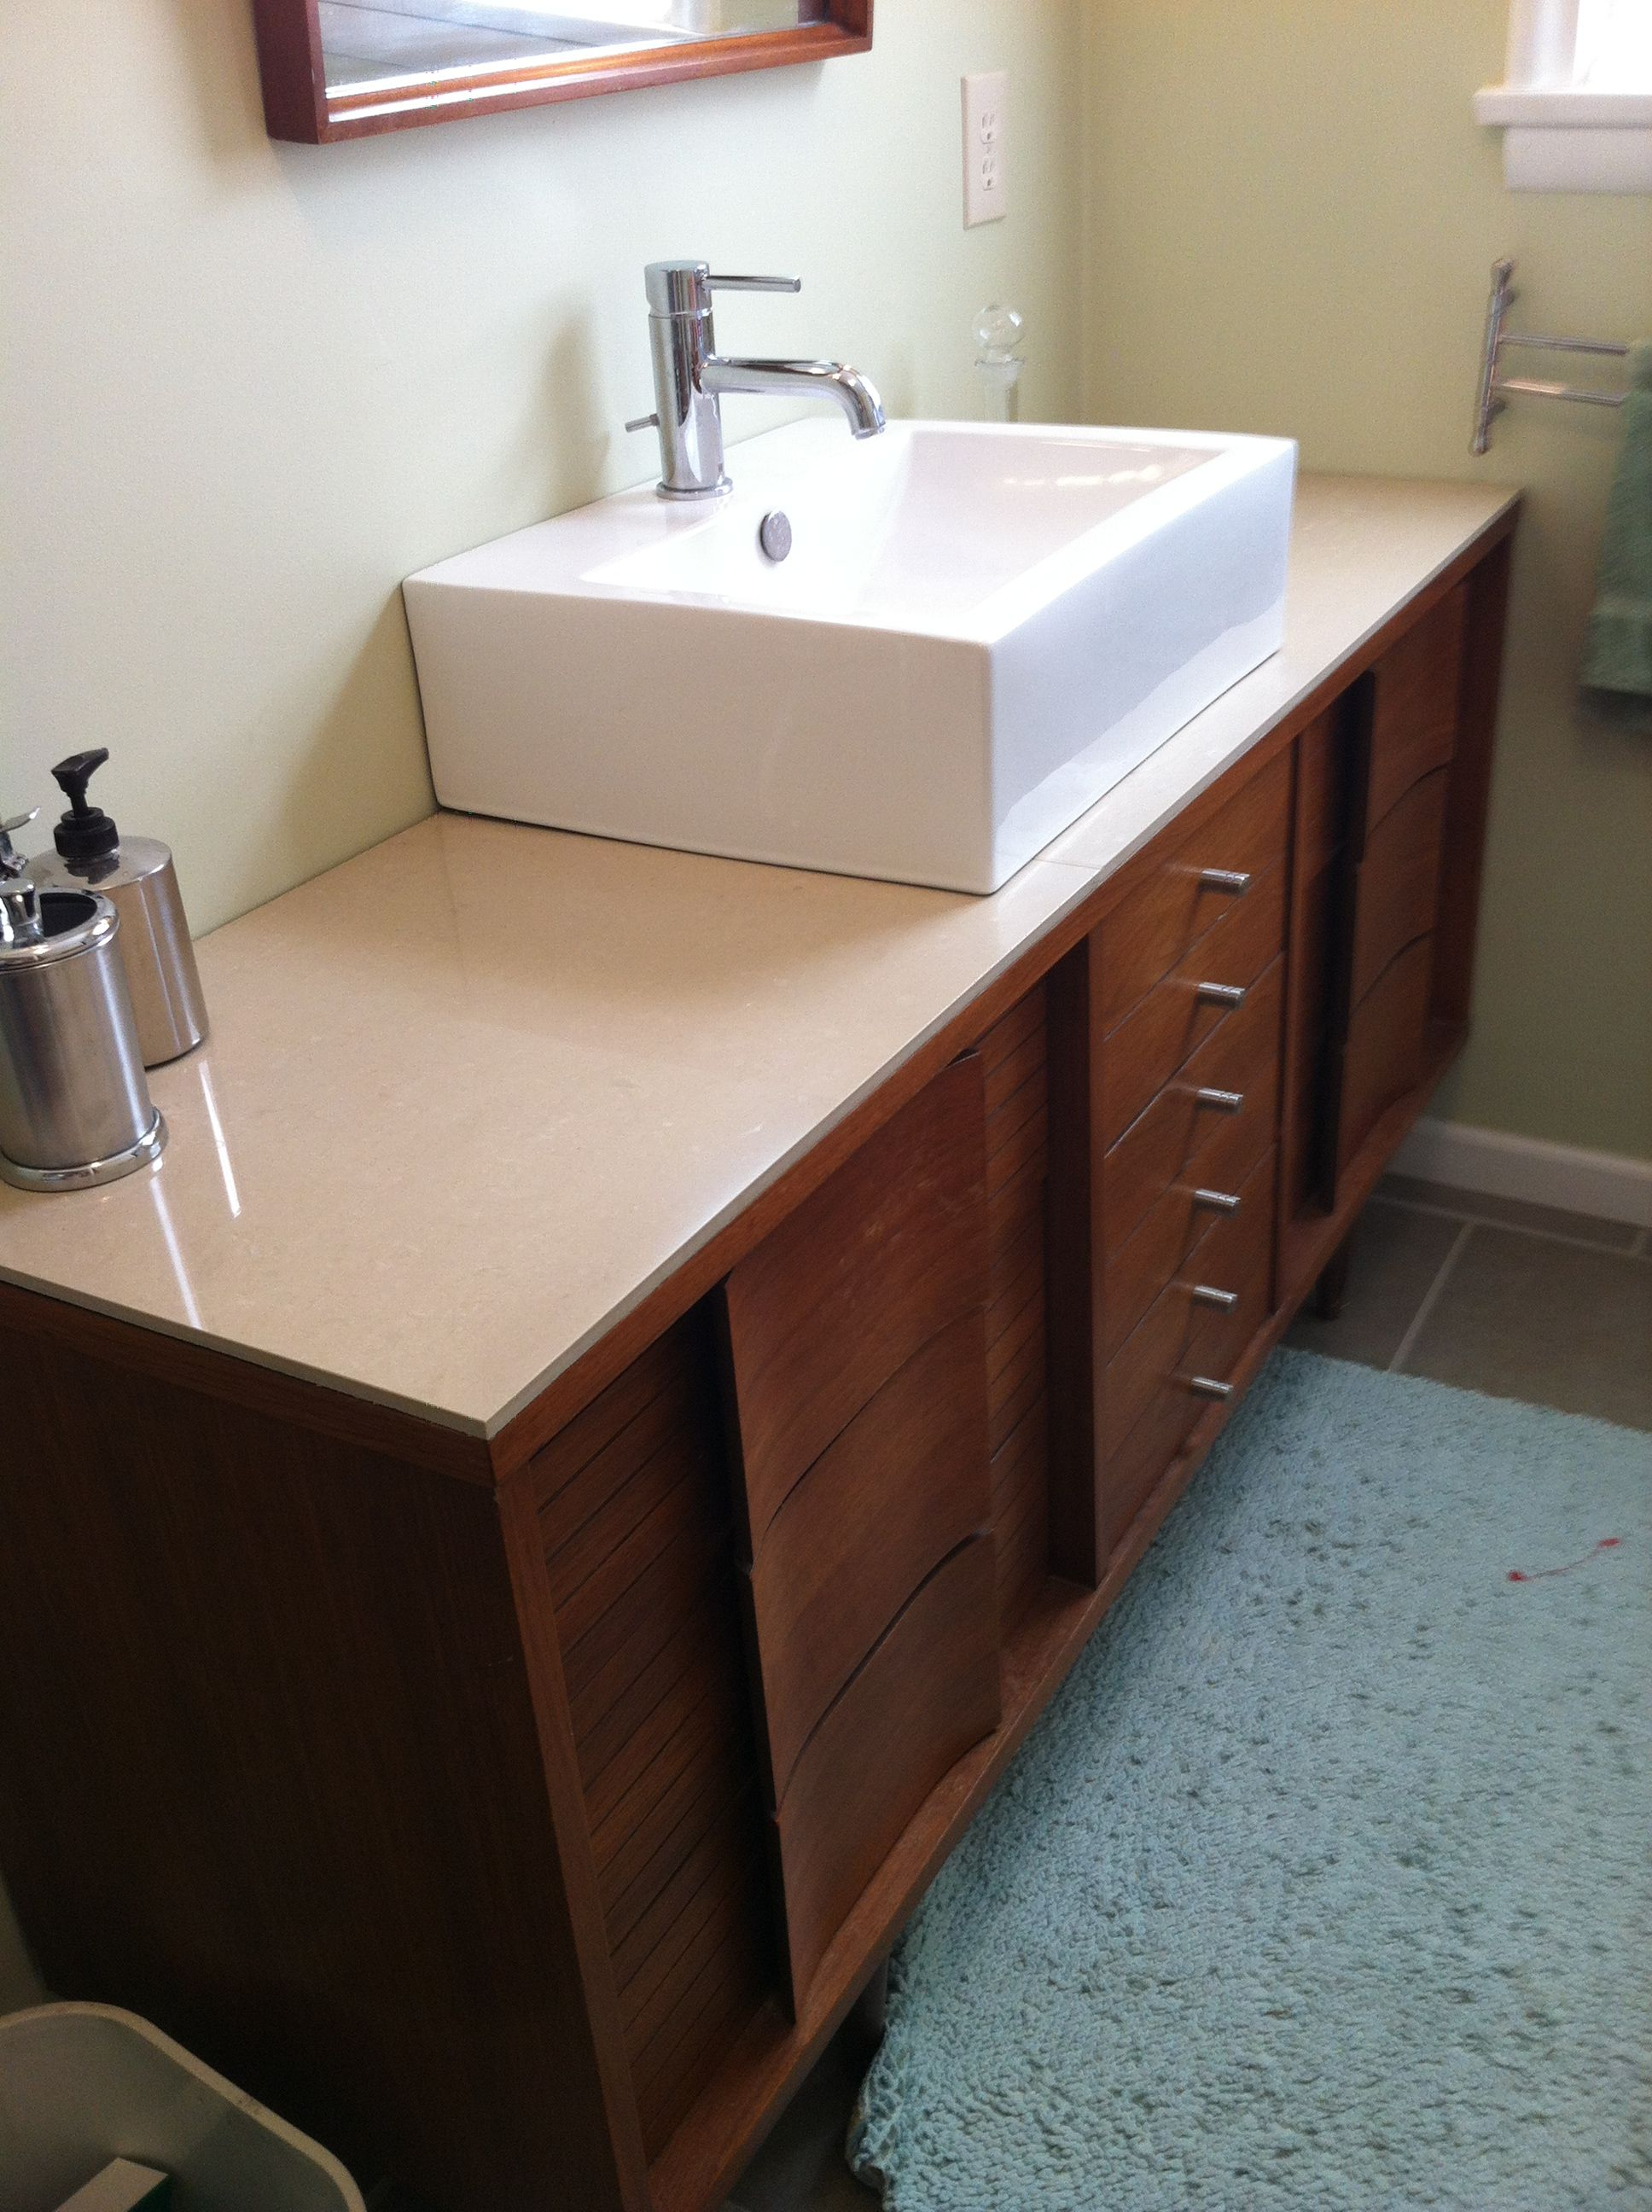 Mid Century Modern Bathroom Vanity Our Master Bath Vanity Mid Century Dresser Topped With 24